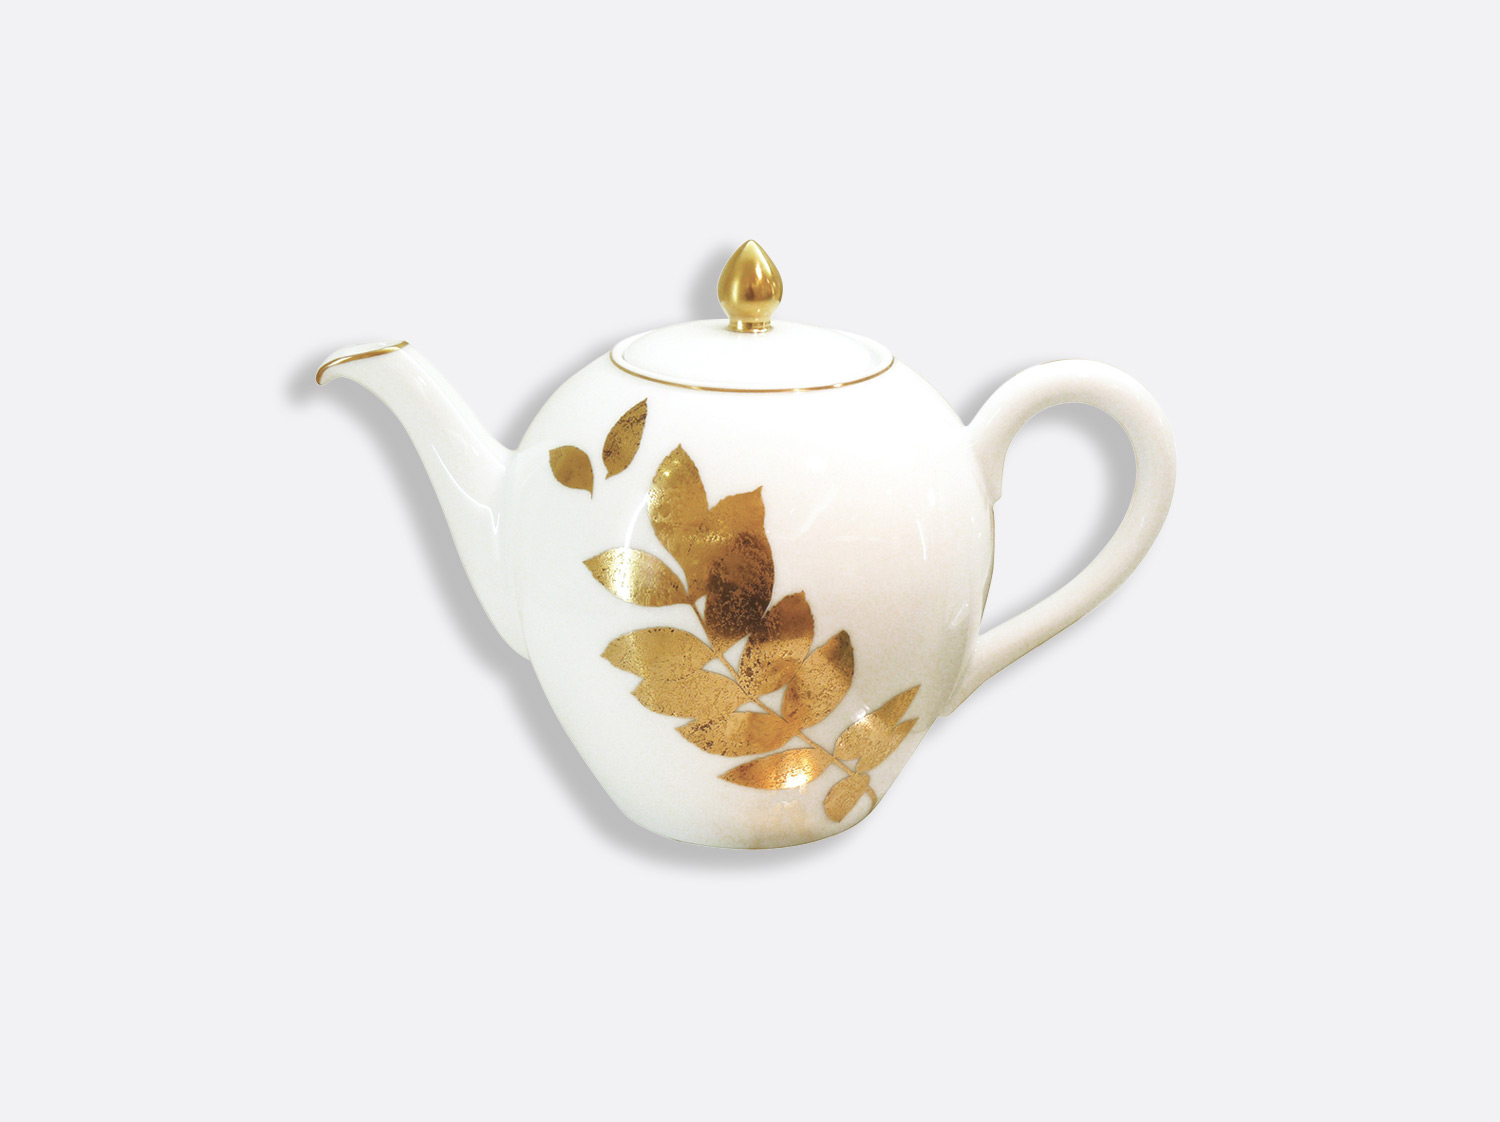 Théière 12 tasses 1,25 L en porcelaine de la collection Vegetal or Bernardaud